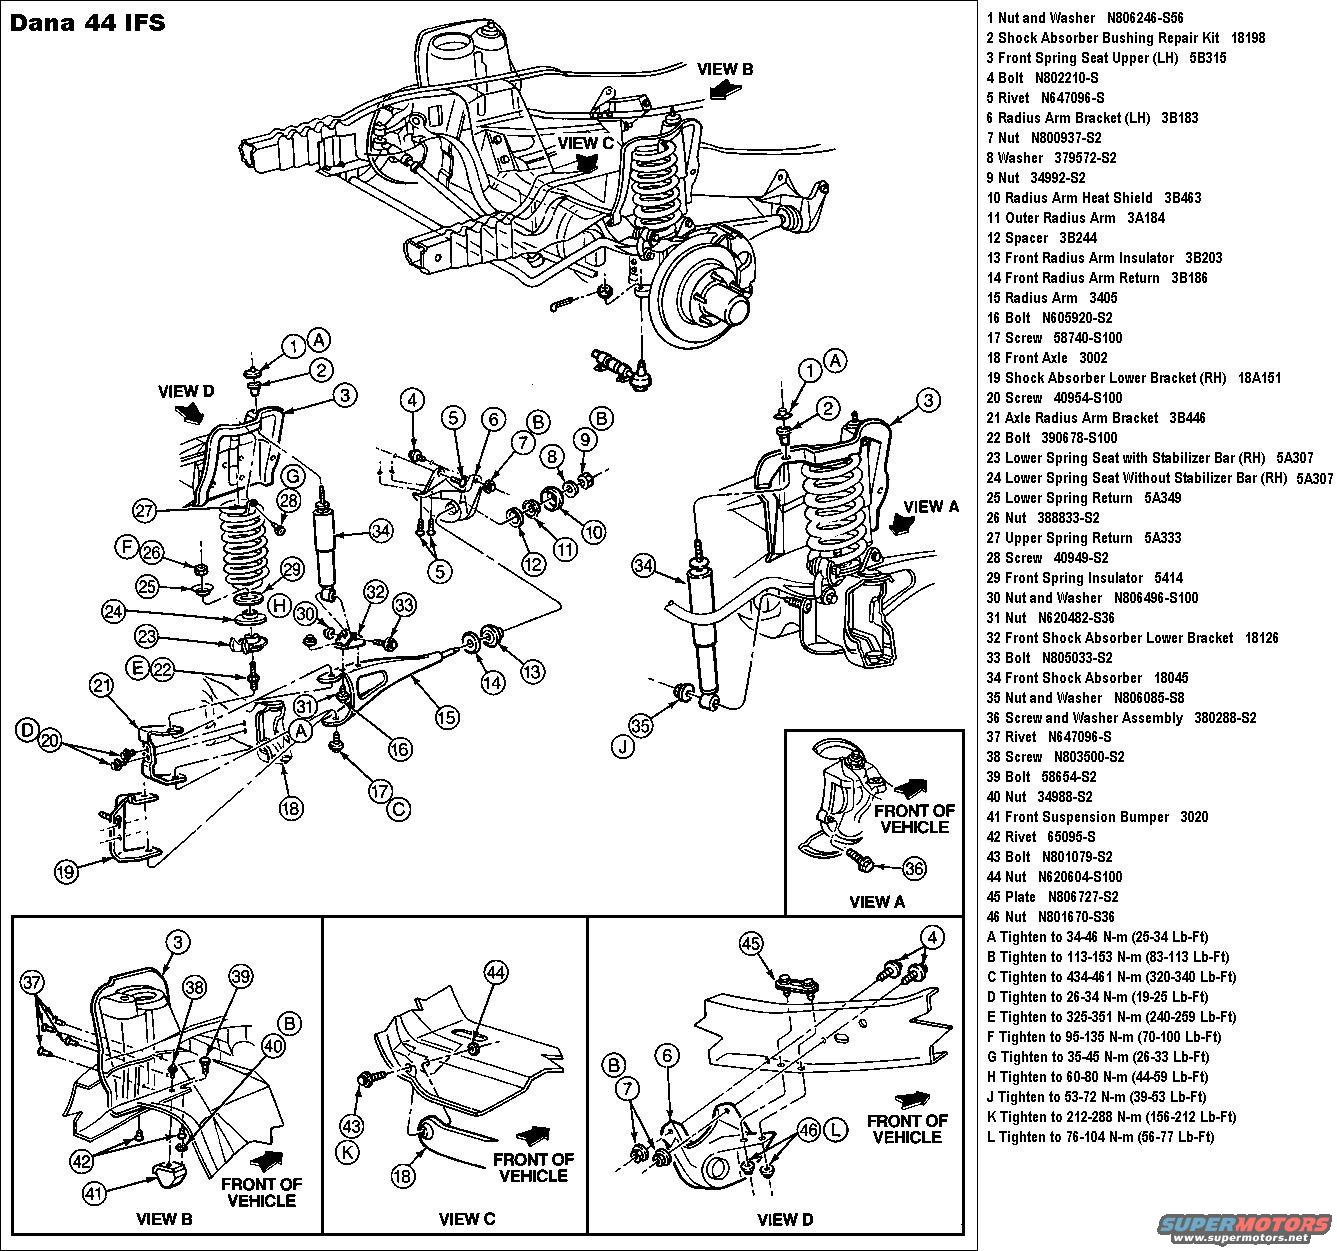 1986 Ford F150 Front Suspension Diagram Download Wiring Diagrams \u2022  2001 F250 Front Suspension Diagram 1986 F250 Front Suspension Diagram